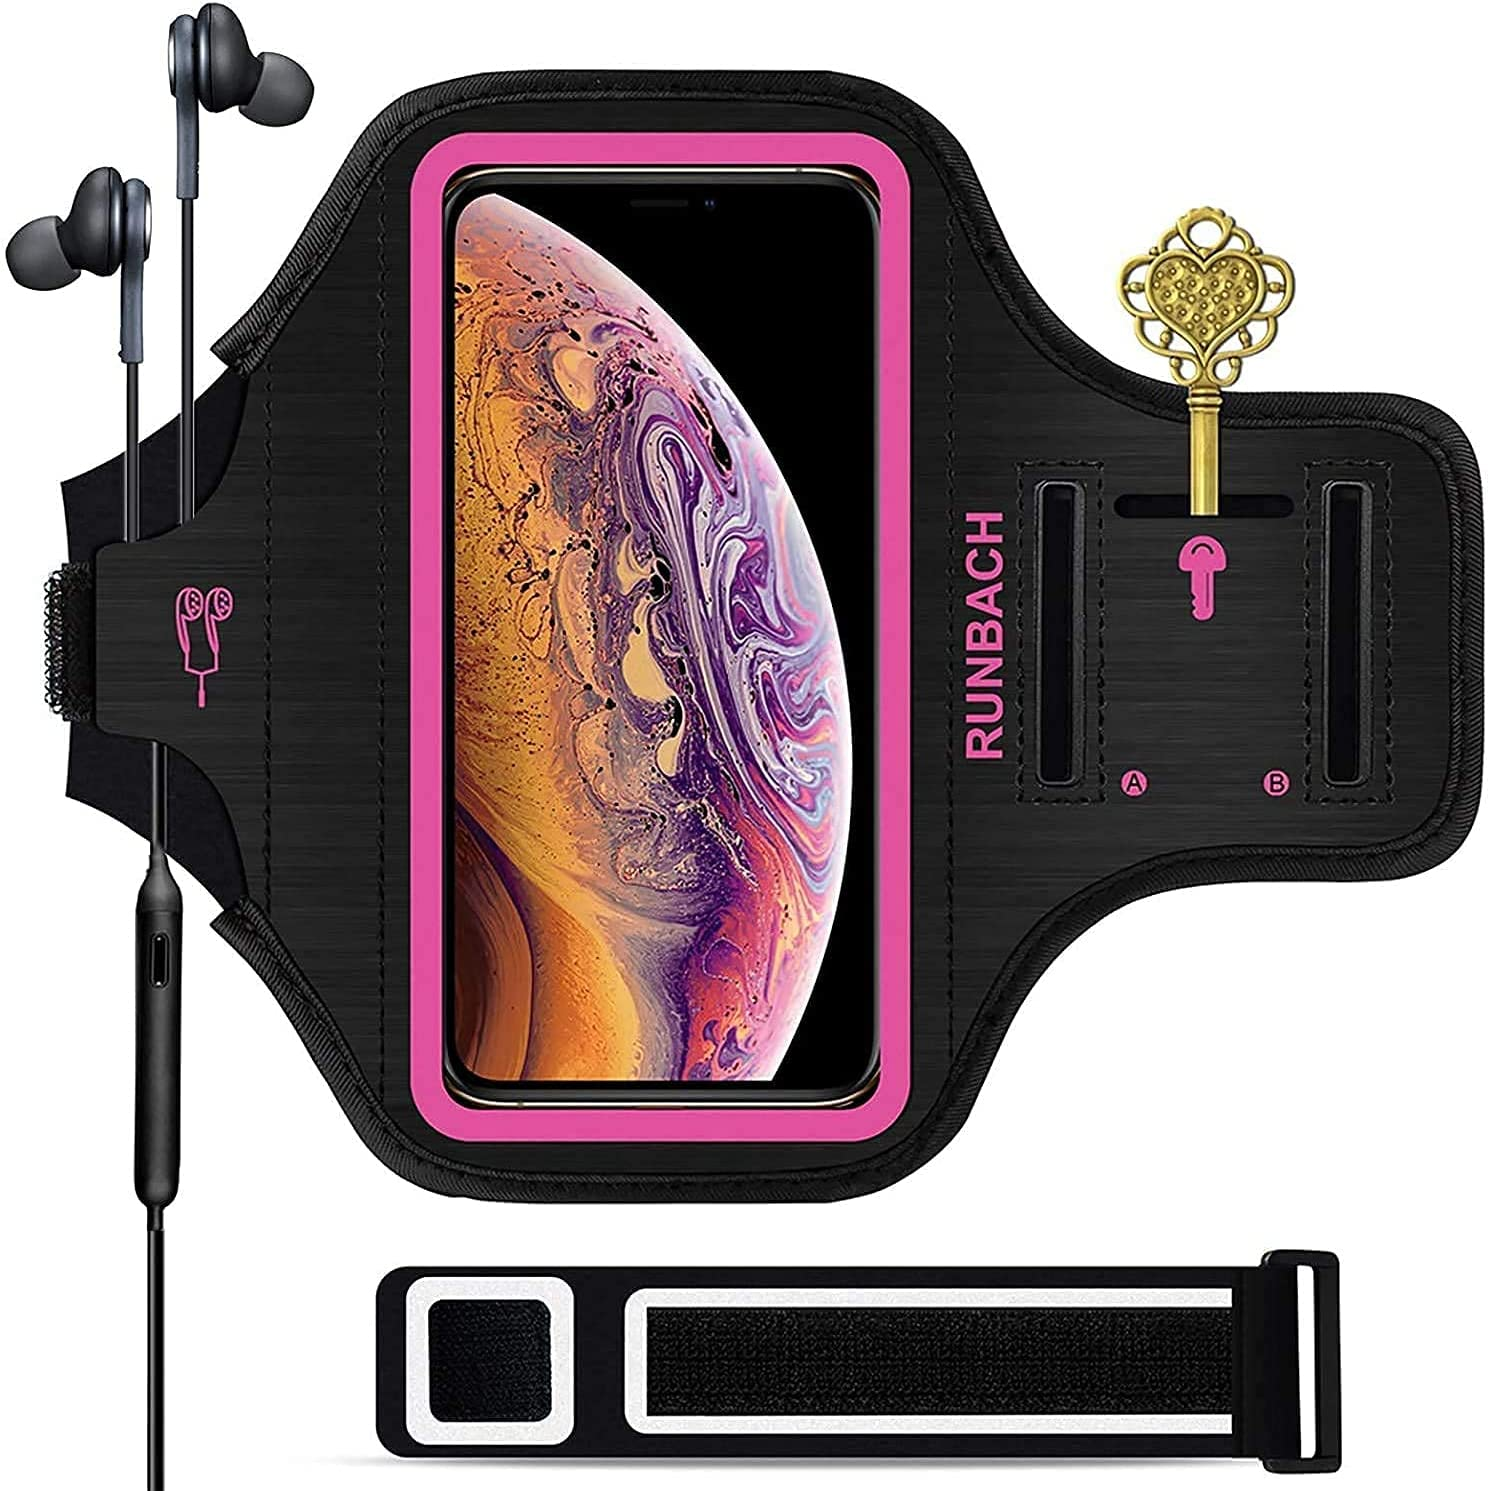 RUNBACH Armband for iPhone 12 Pro/12/11/XR,Sweatproof Running Exercise Bag with Fingerprint Touch and Card Slot for 6.1 Inch iPhone 12,12 Pro,iPhone 11,iPhone XR(Pink)